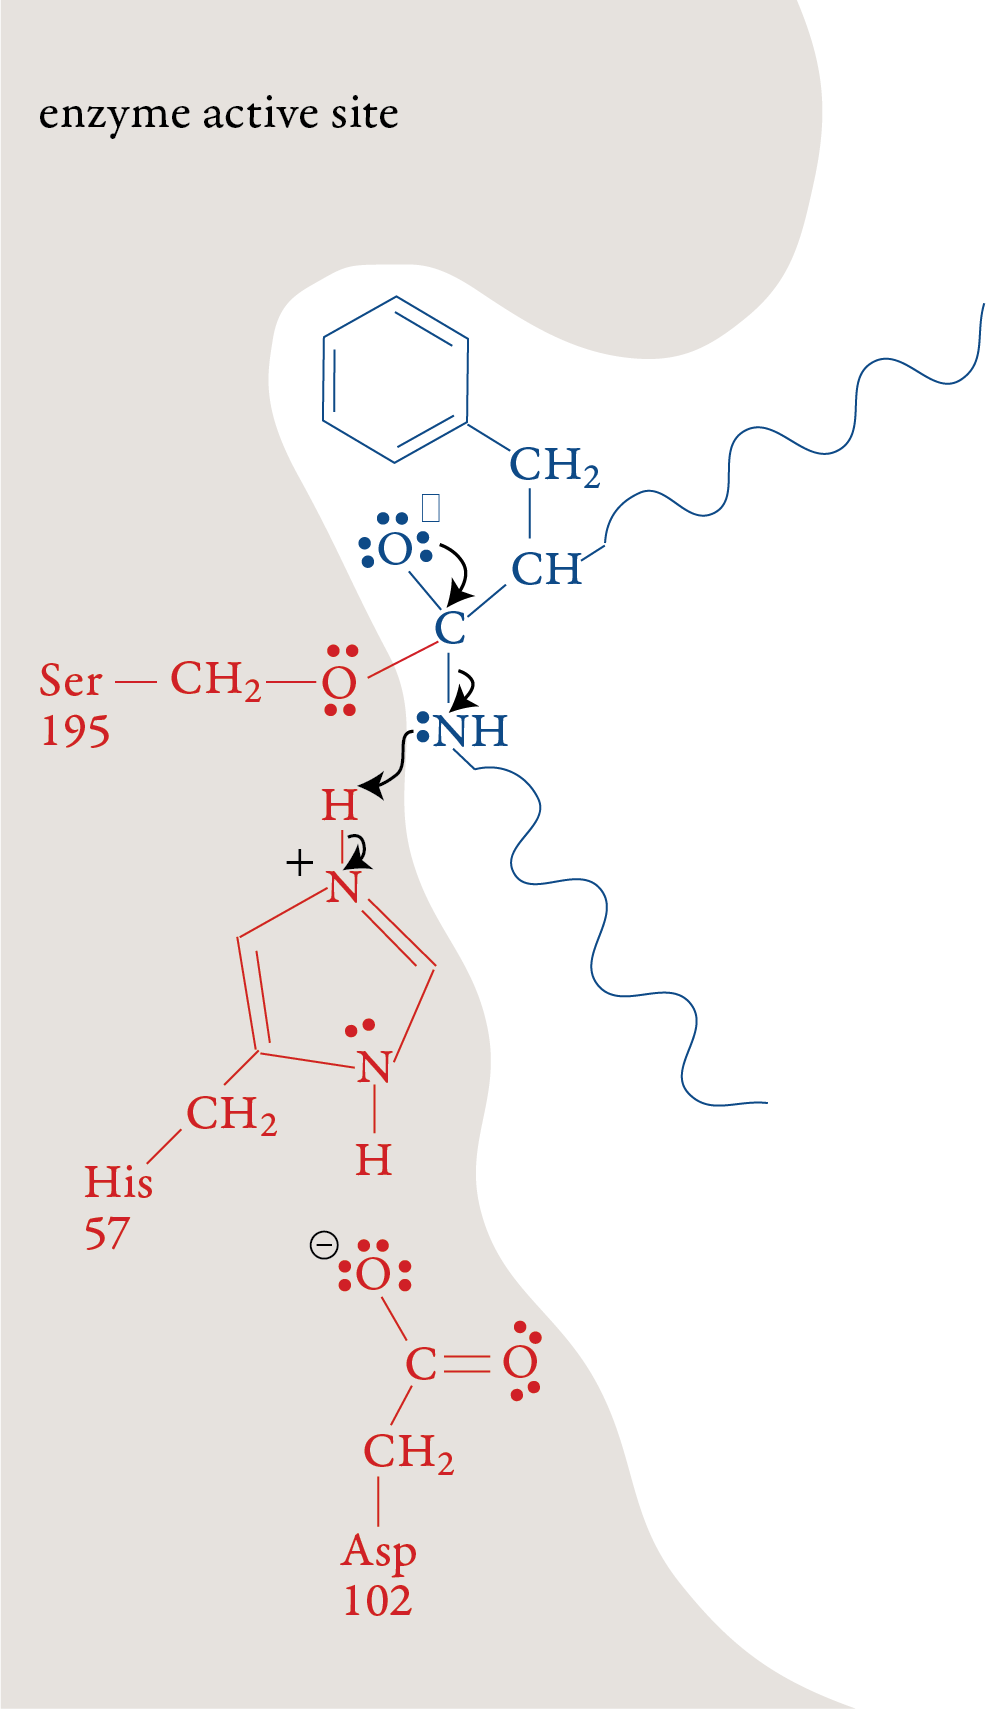 Image of the second step in the chymotrypsin mechanism